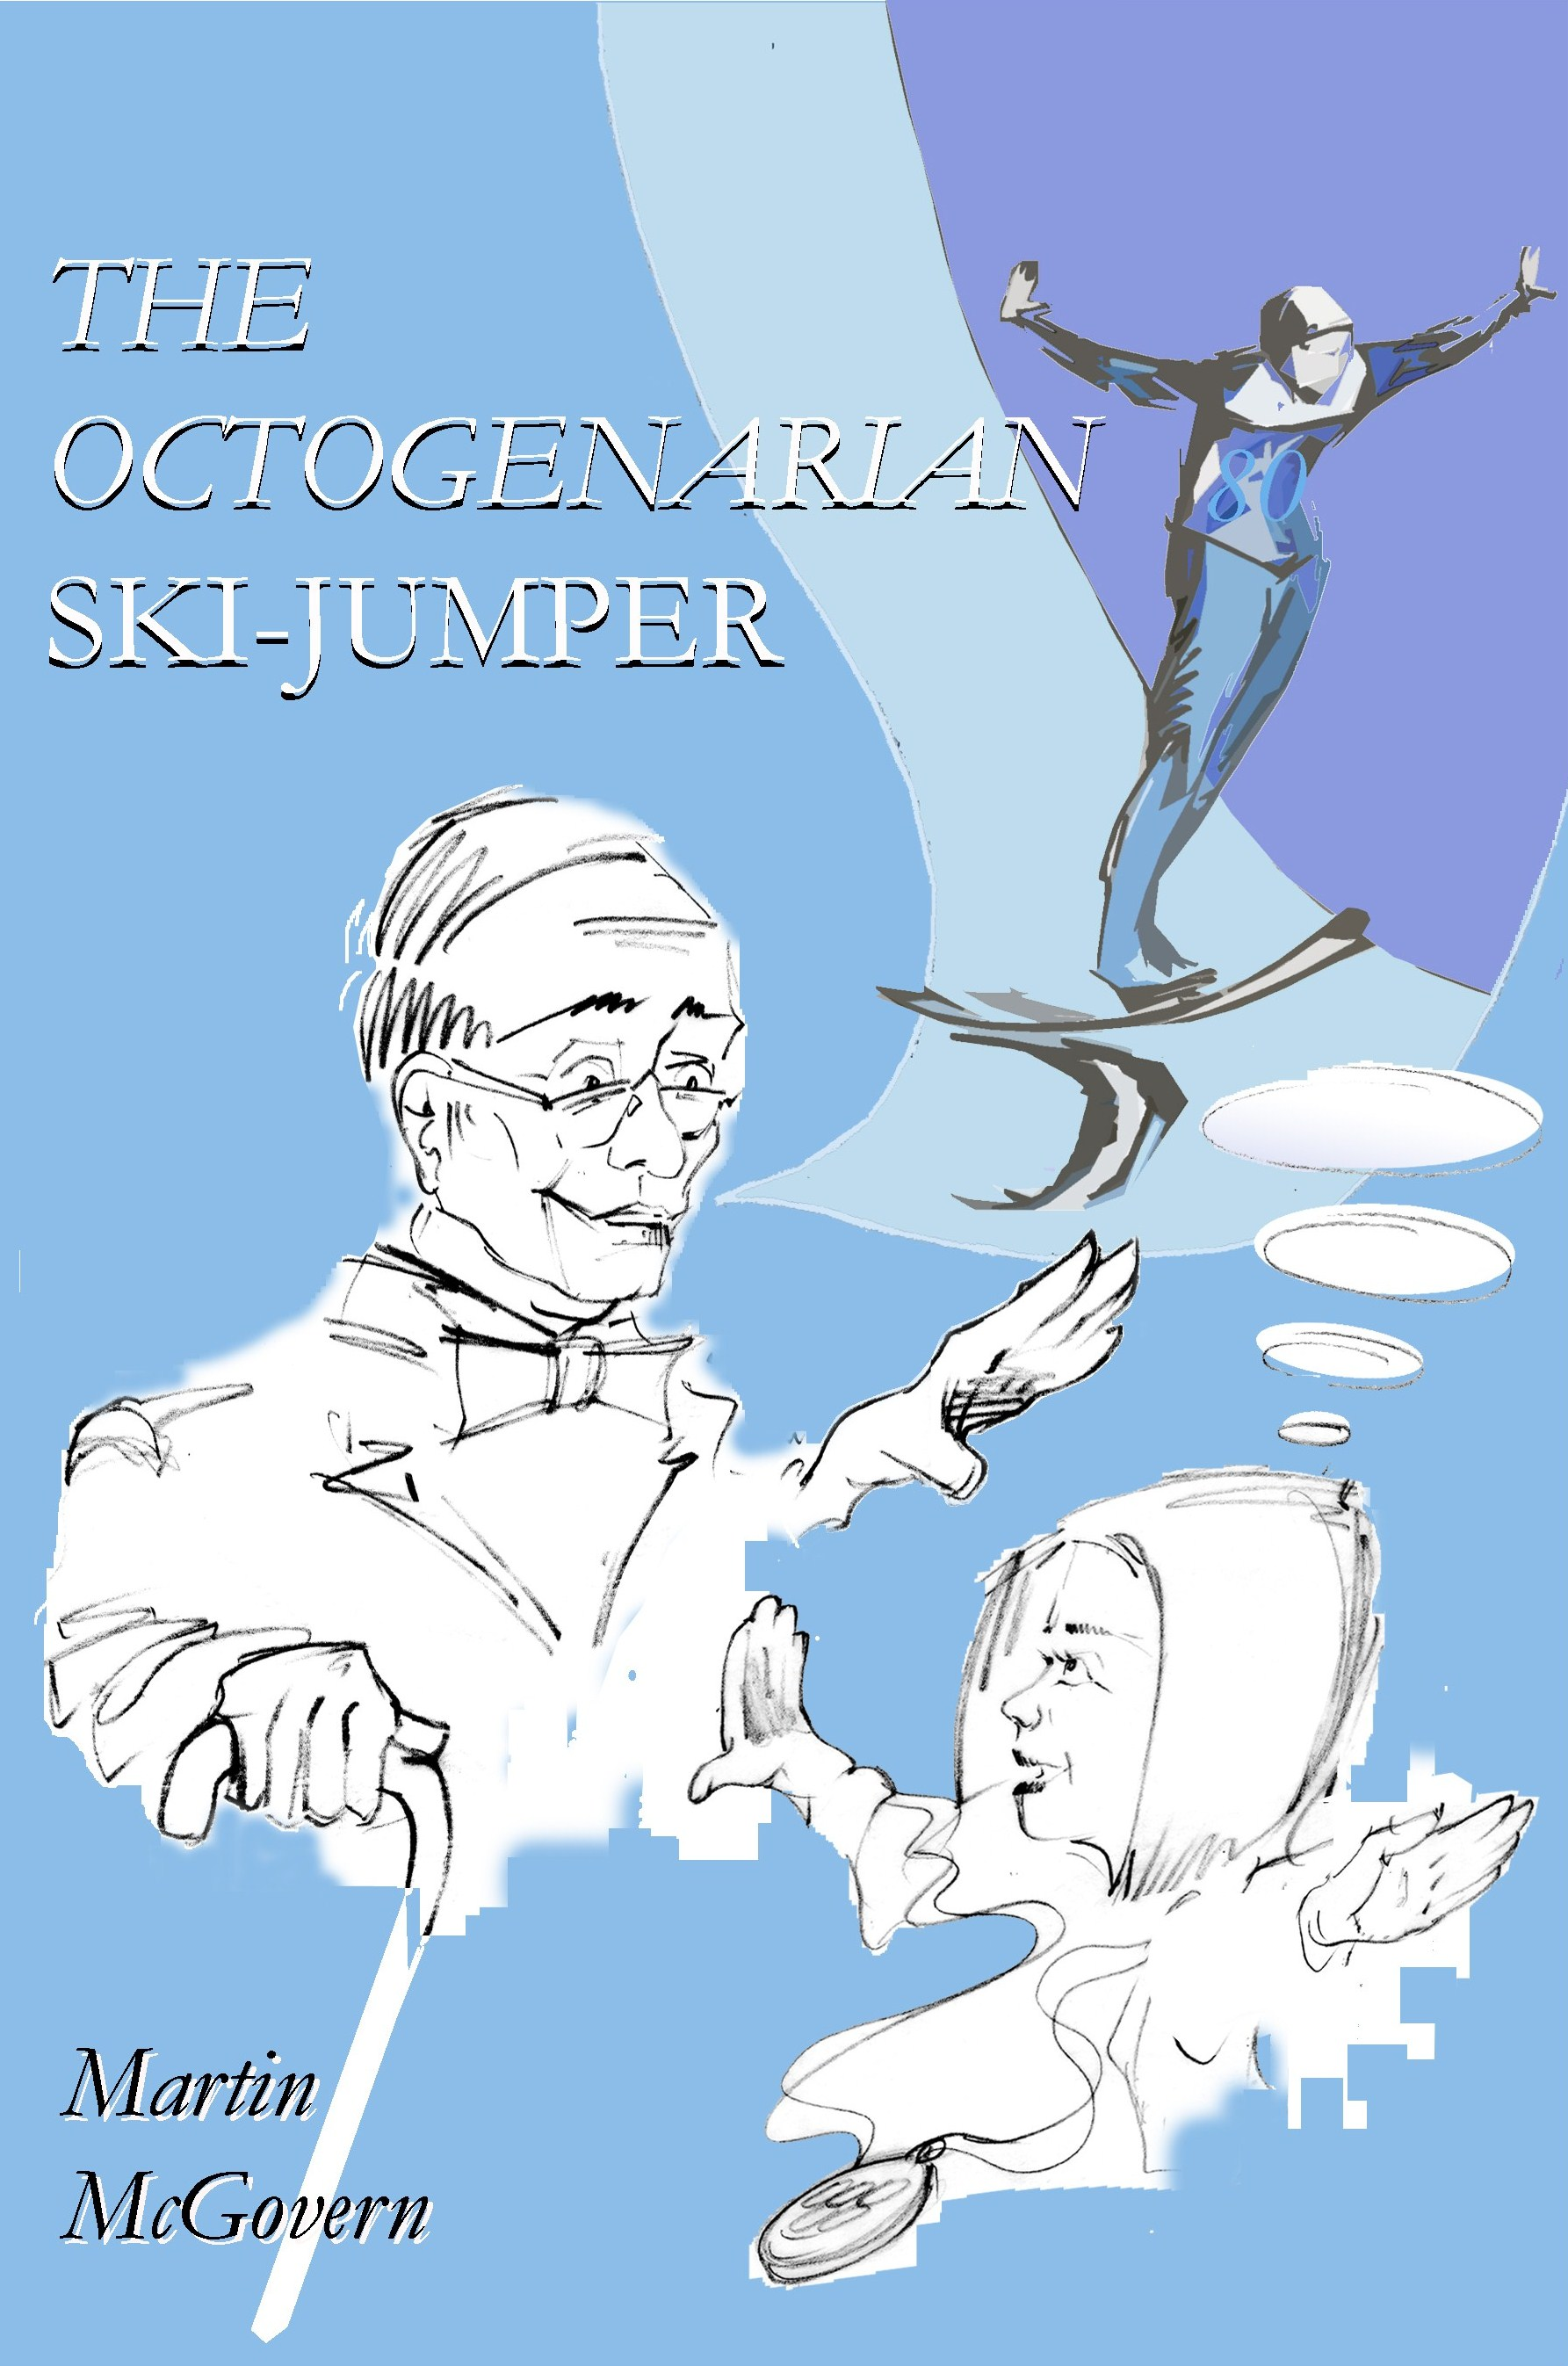 Age 24 - The Octogenarian Ski-jumper